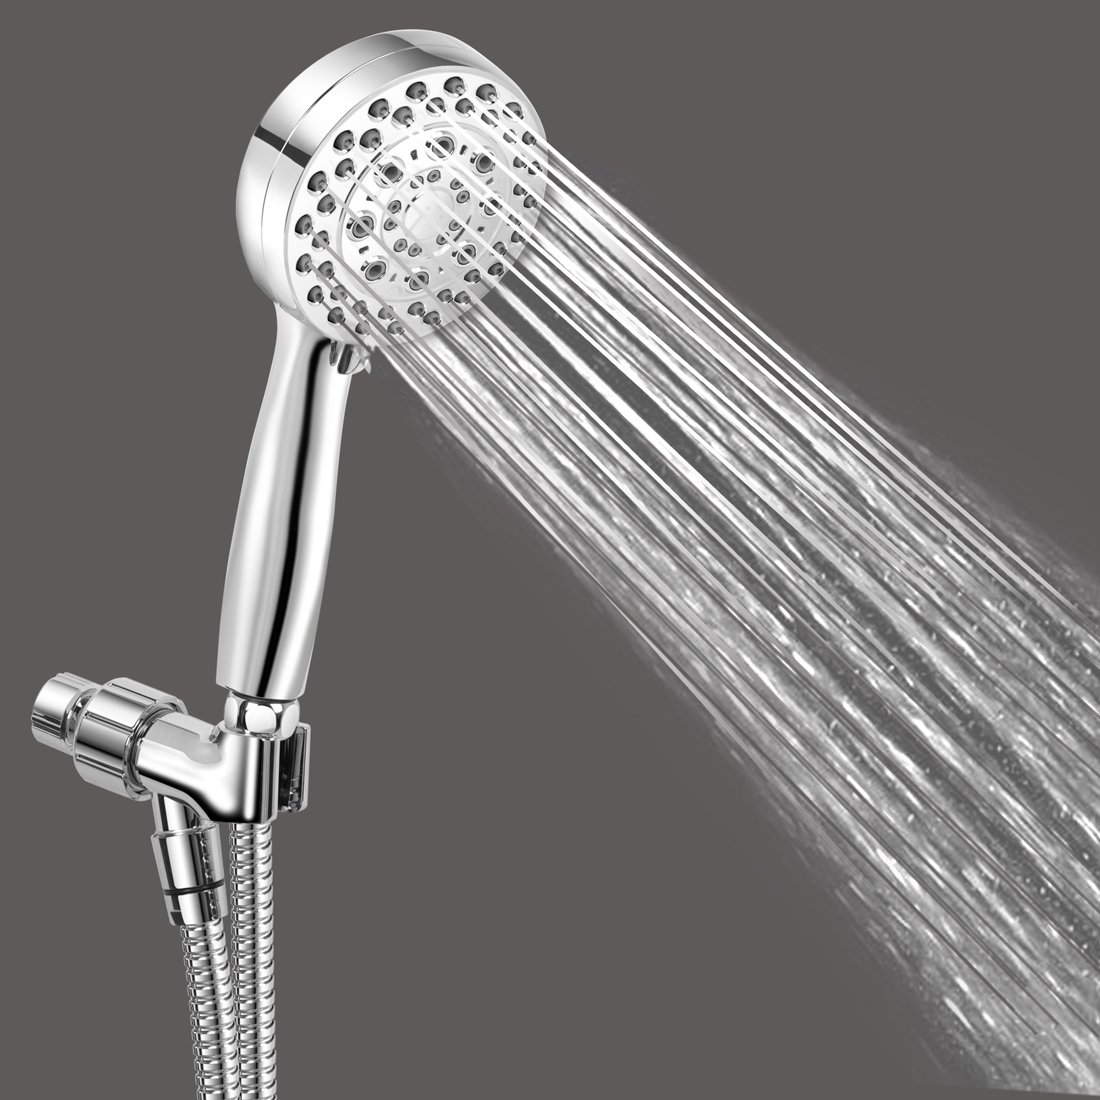 Shower Head With Hose - 5 Function Shower Head Removable Water Restrictor- Luxury Full Chrome Finish Hand Shower by SuperArt (Image #4)